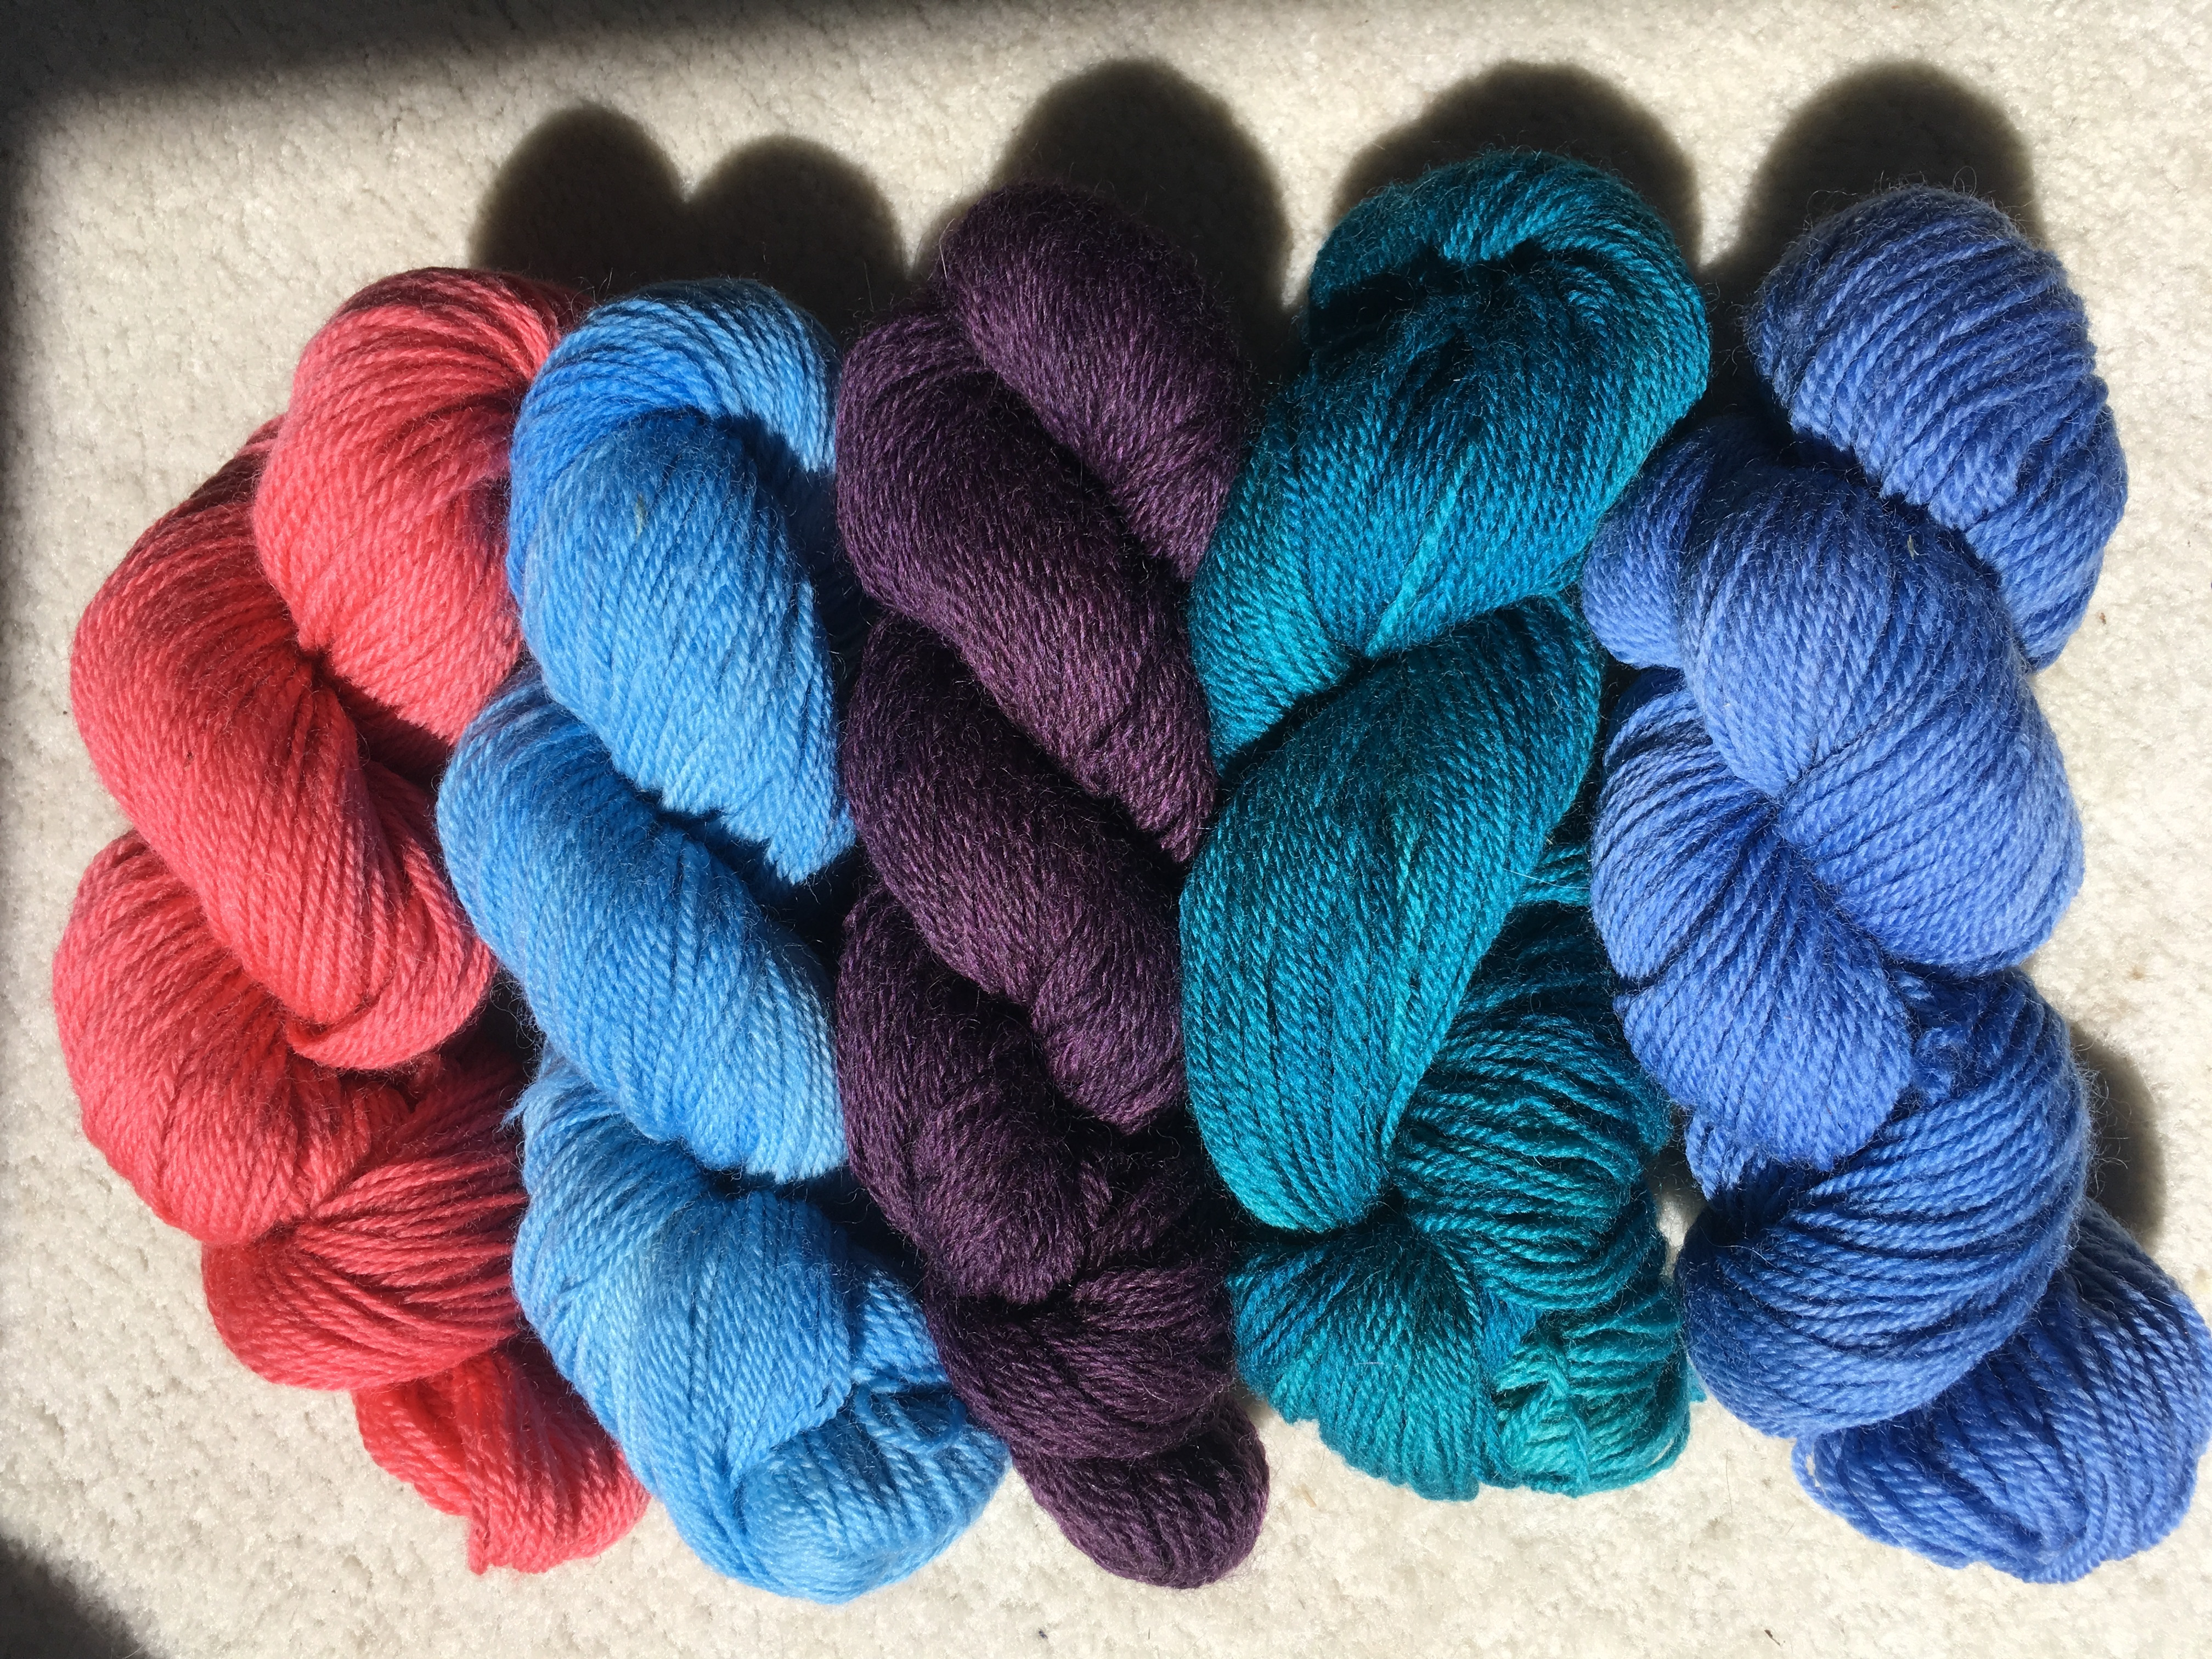 Hand-Dyed Worsted Yarn